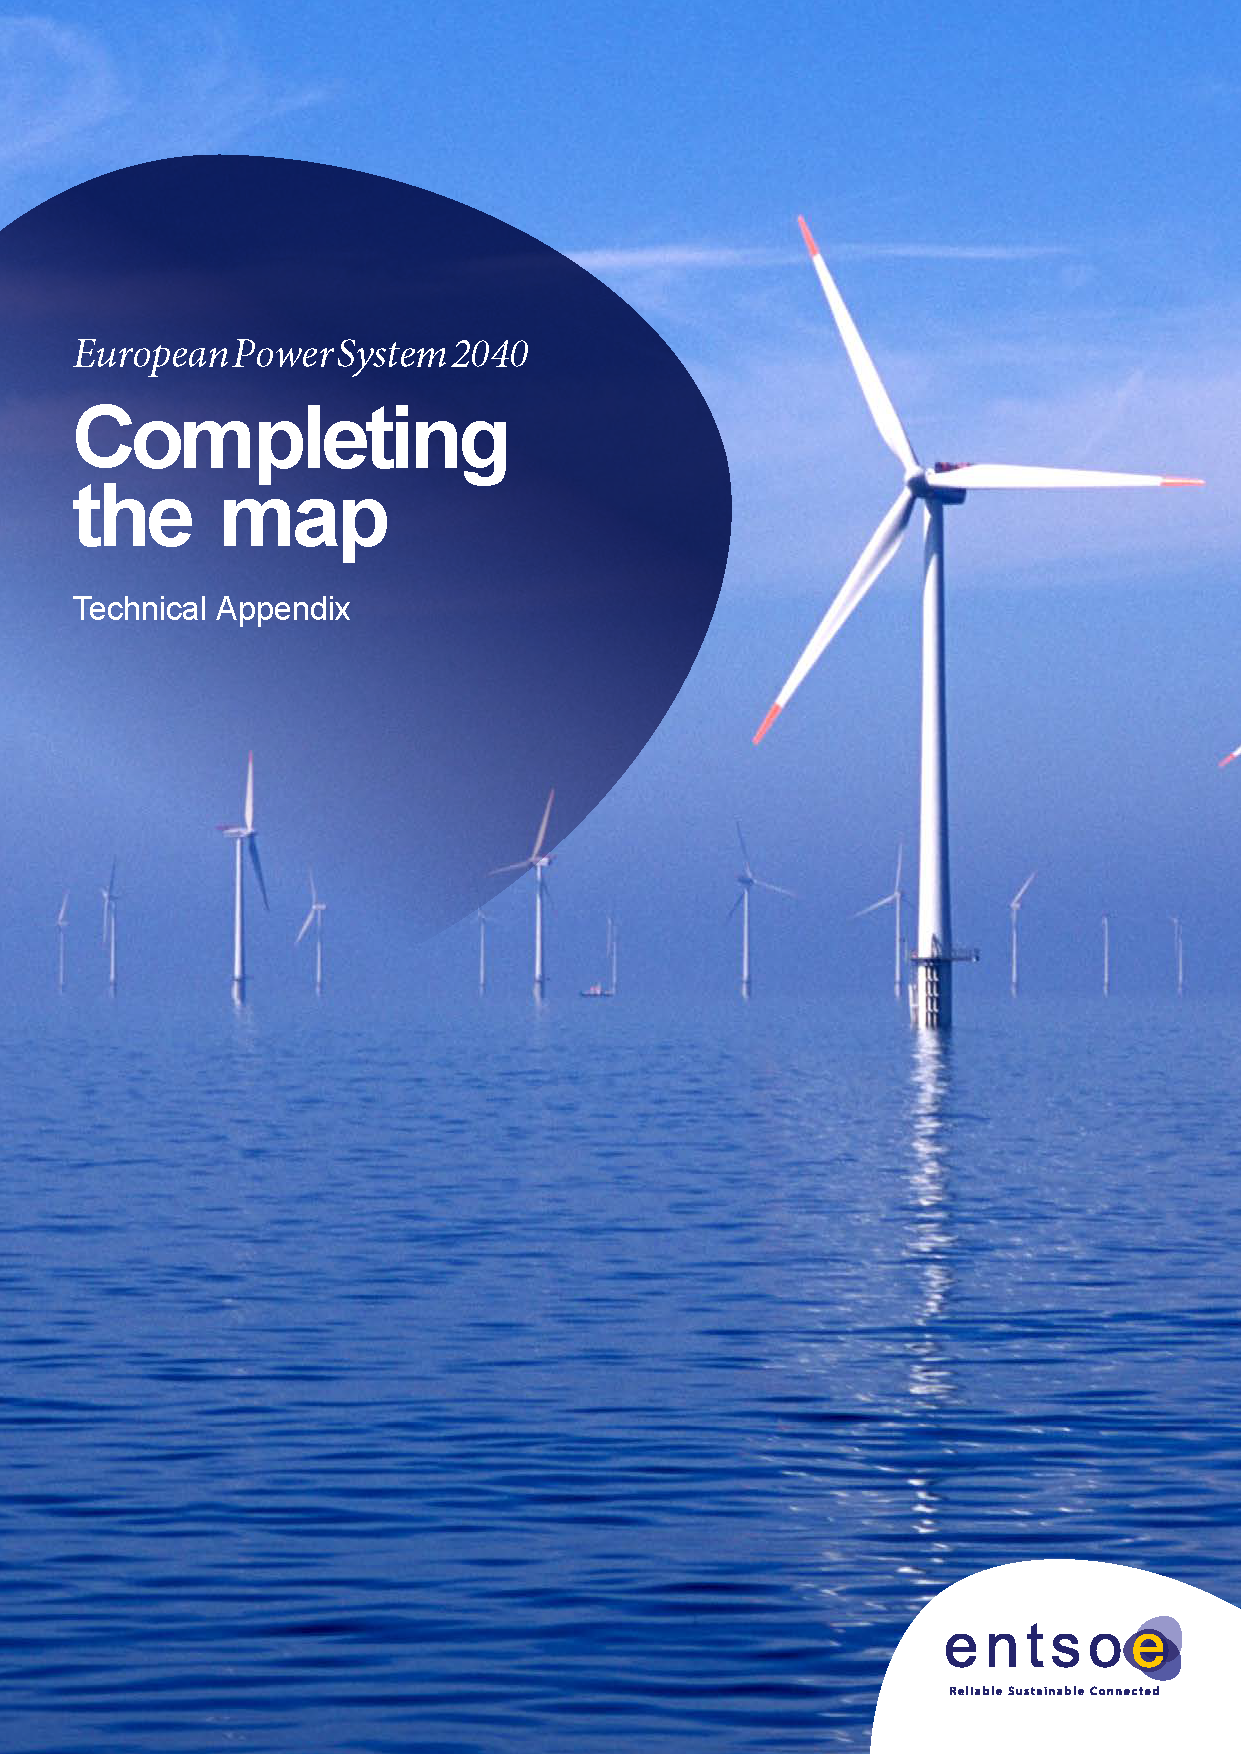 Download the European Power System 2040 Appendix report